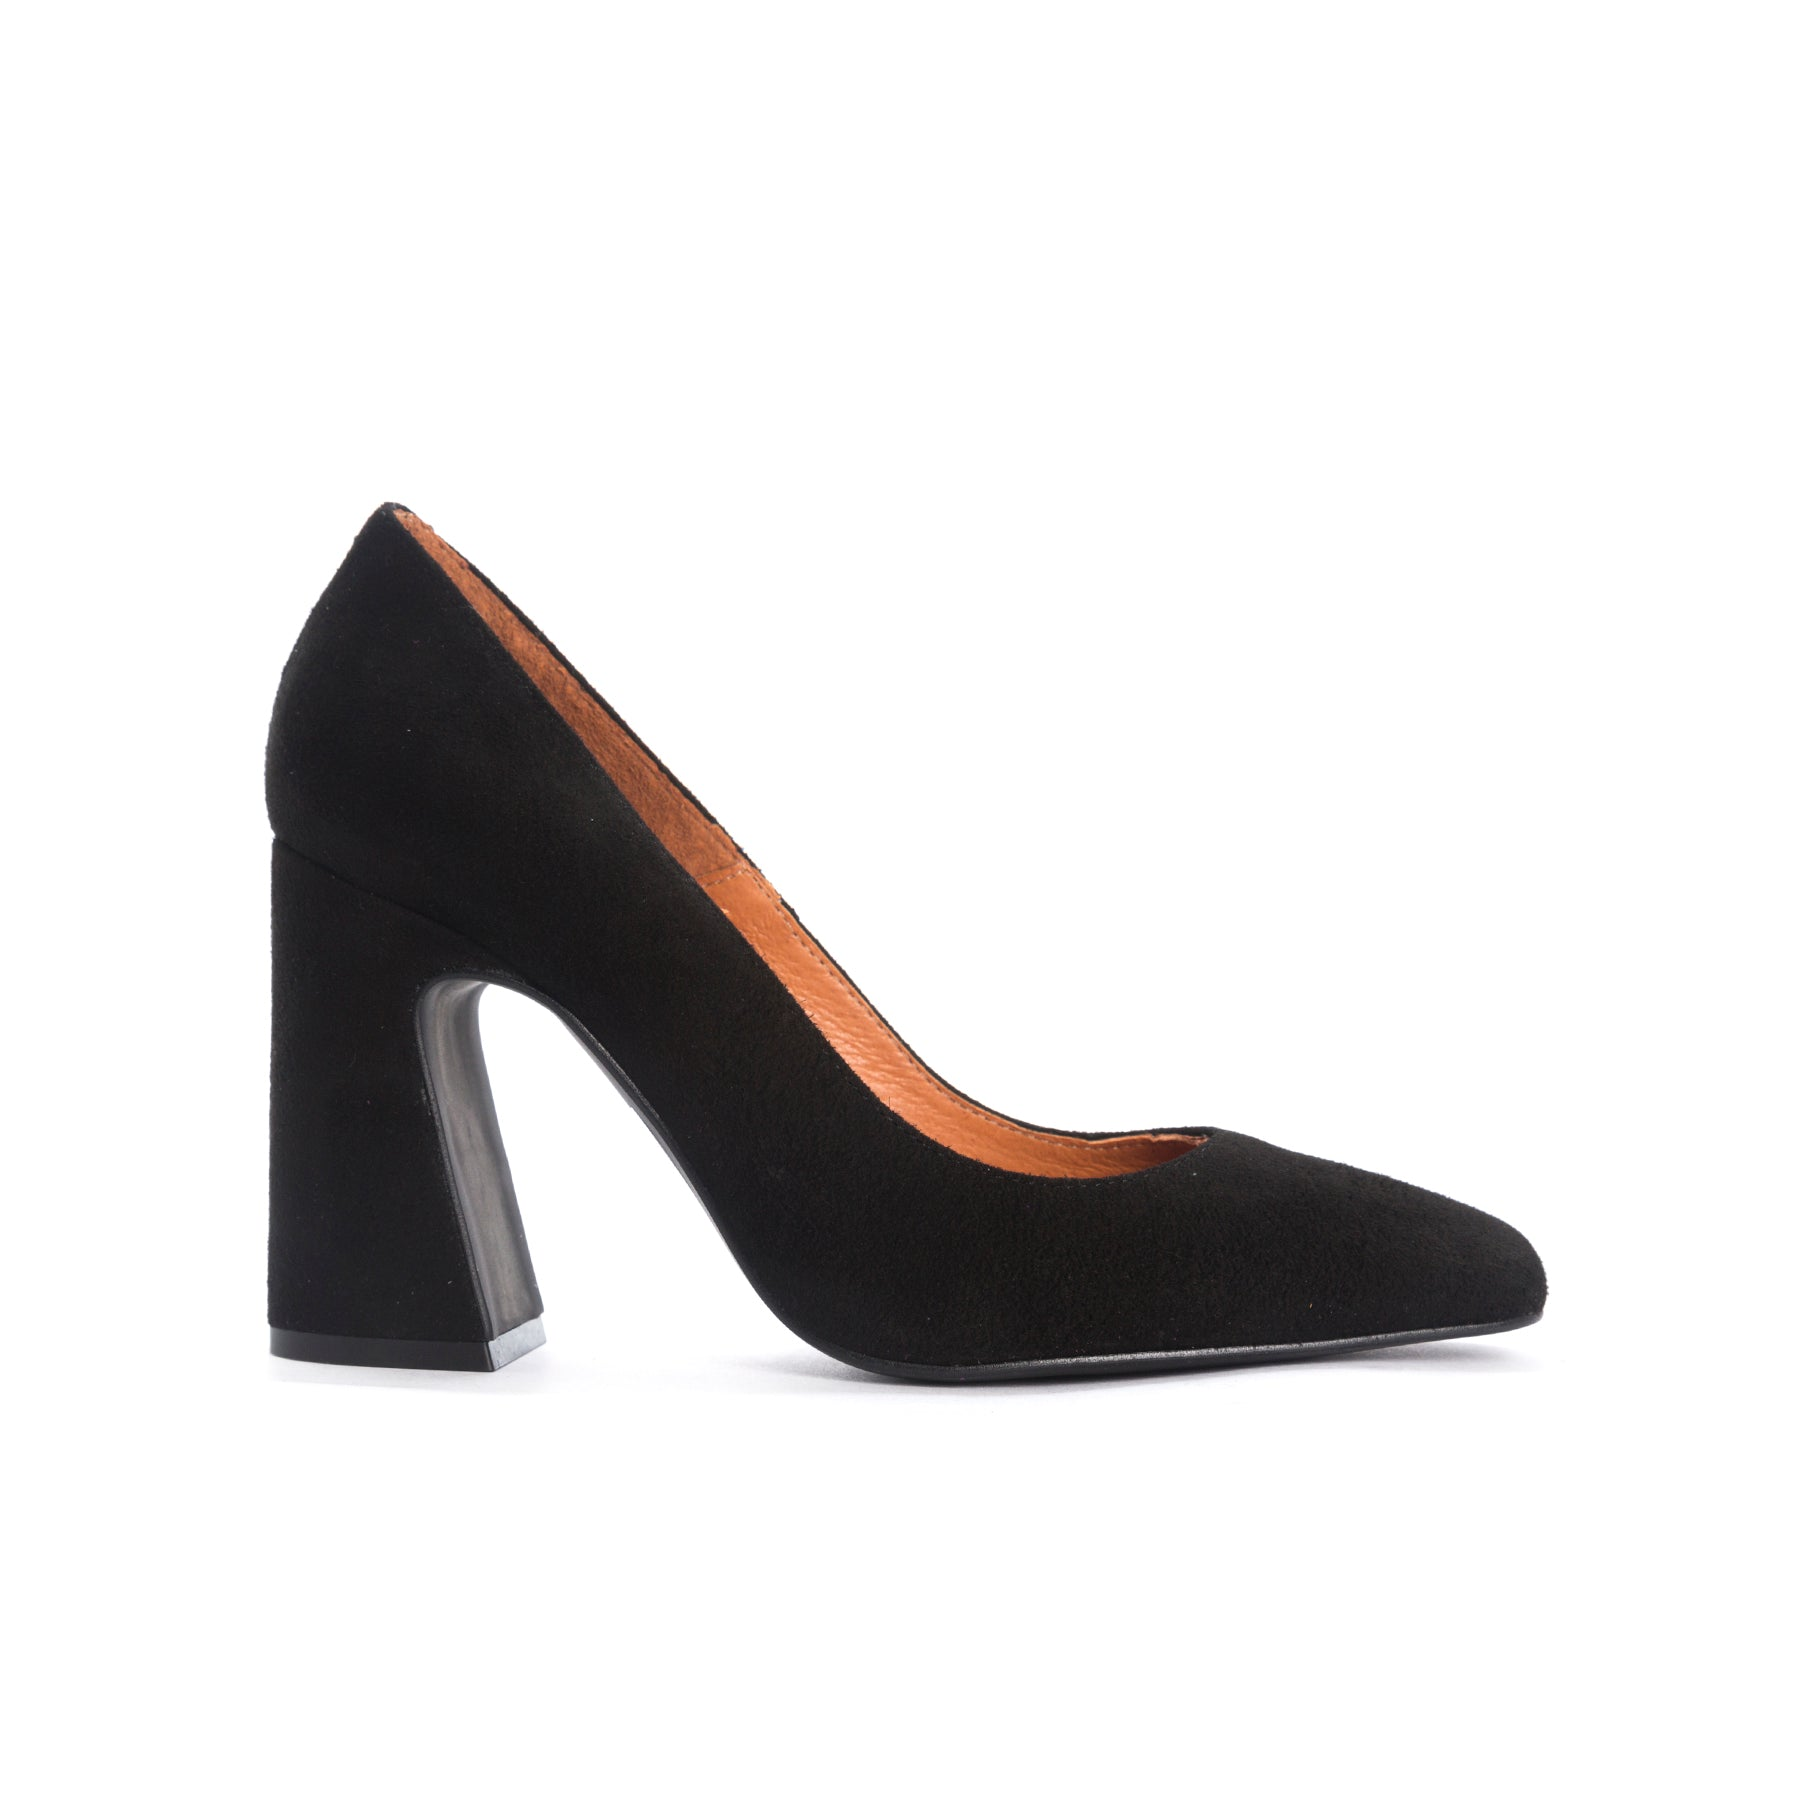 Thalia Black Suede Pumps